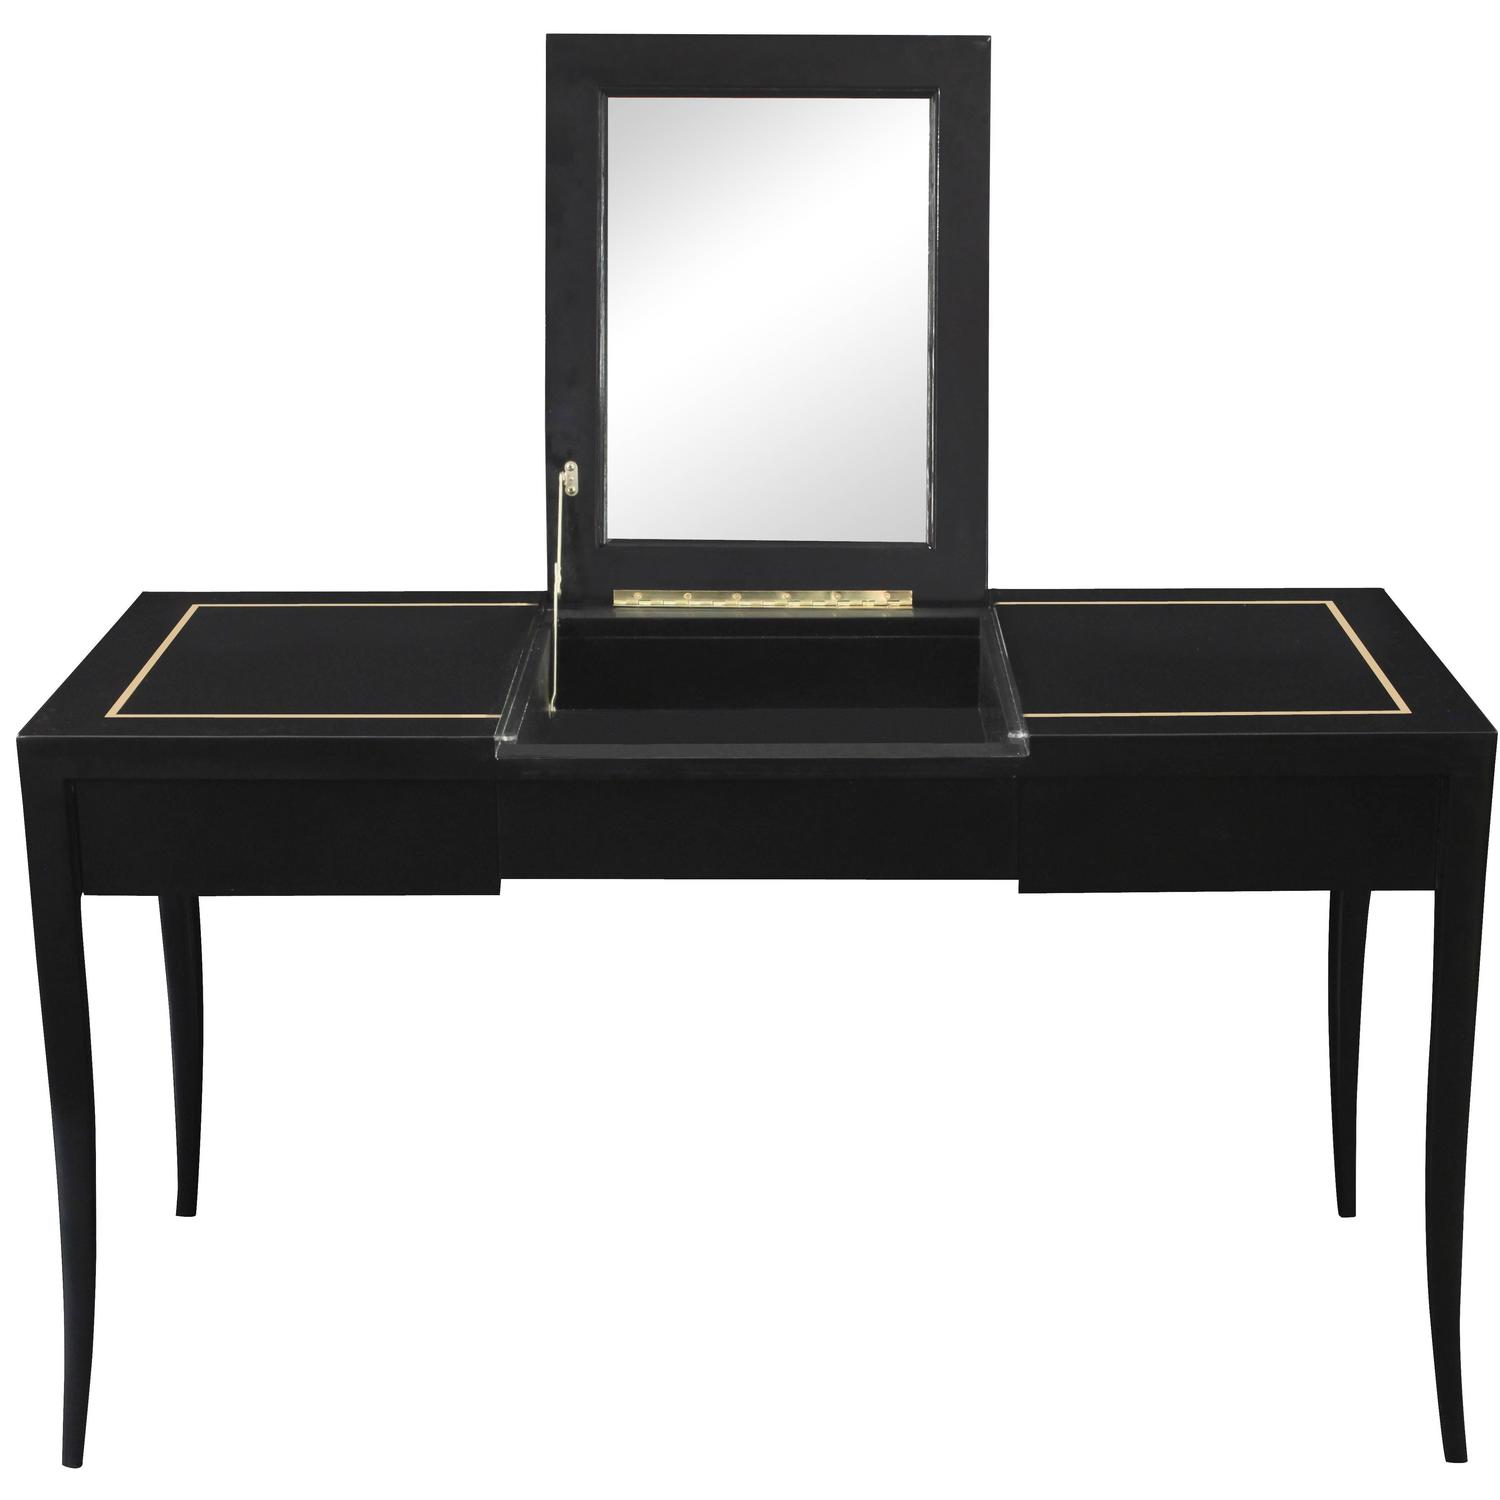 Gold Vanity Table Part - 29: Ladyu0027s Vanity With Gold Inlay And Flip-Up Mirror Top By Tommi Parzinger At  1stdibs